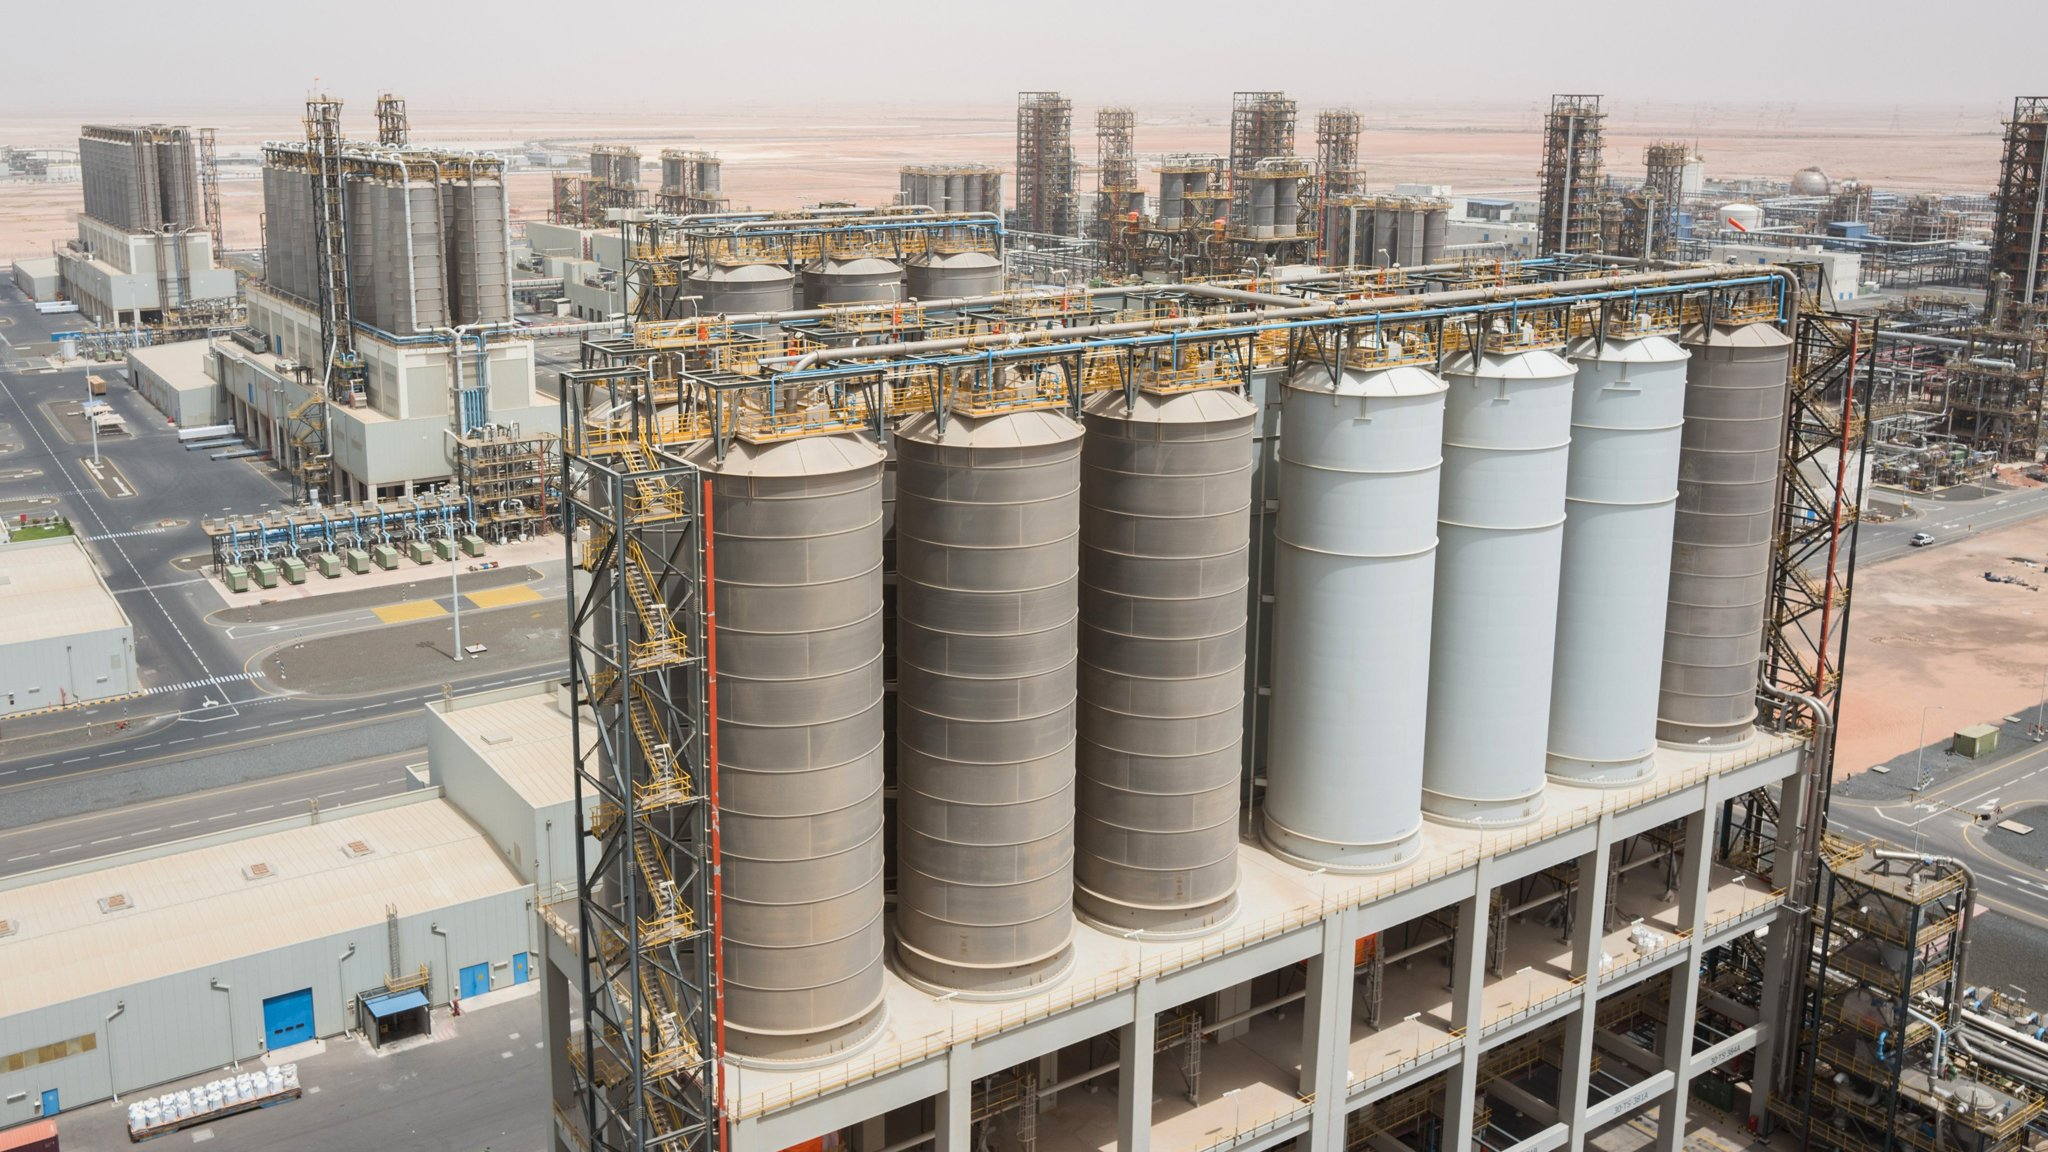 Adnoc awards equity stakes to European oil majors